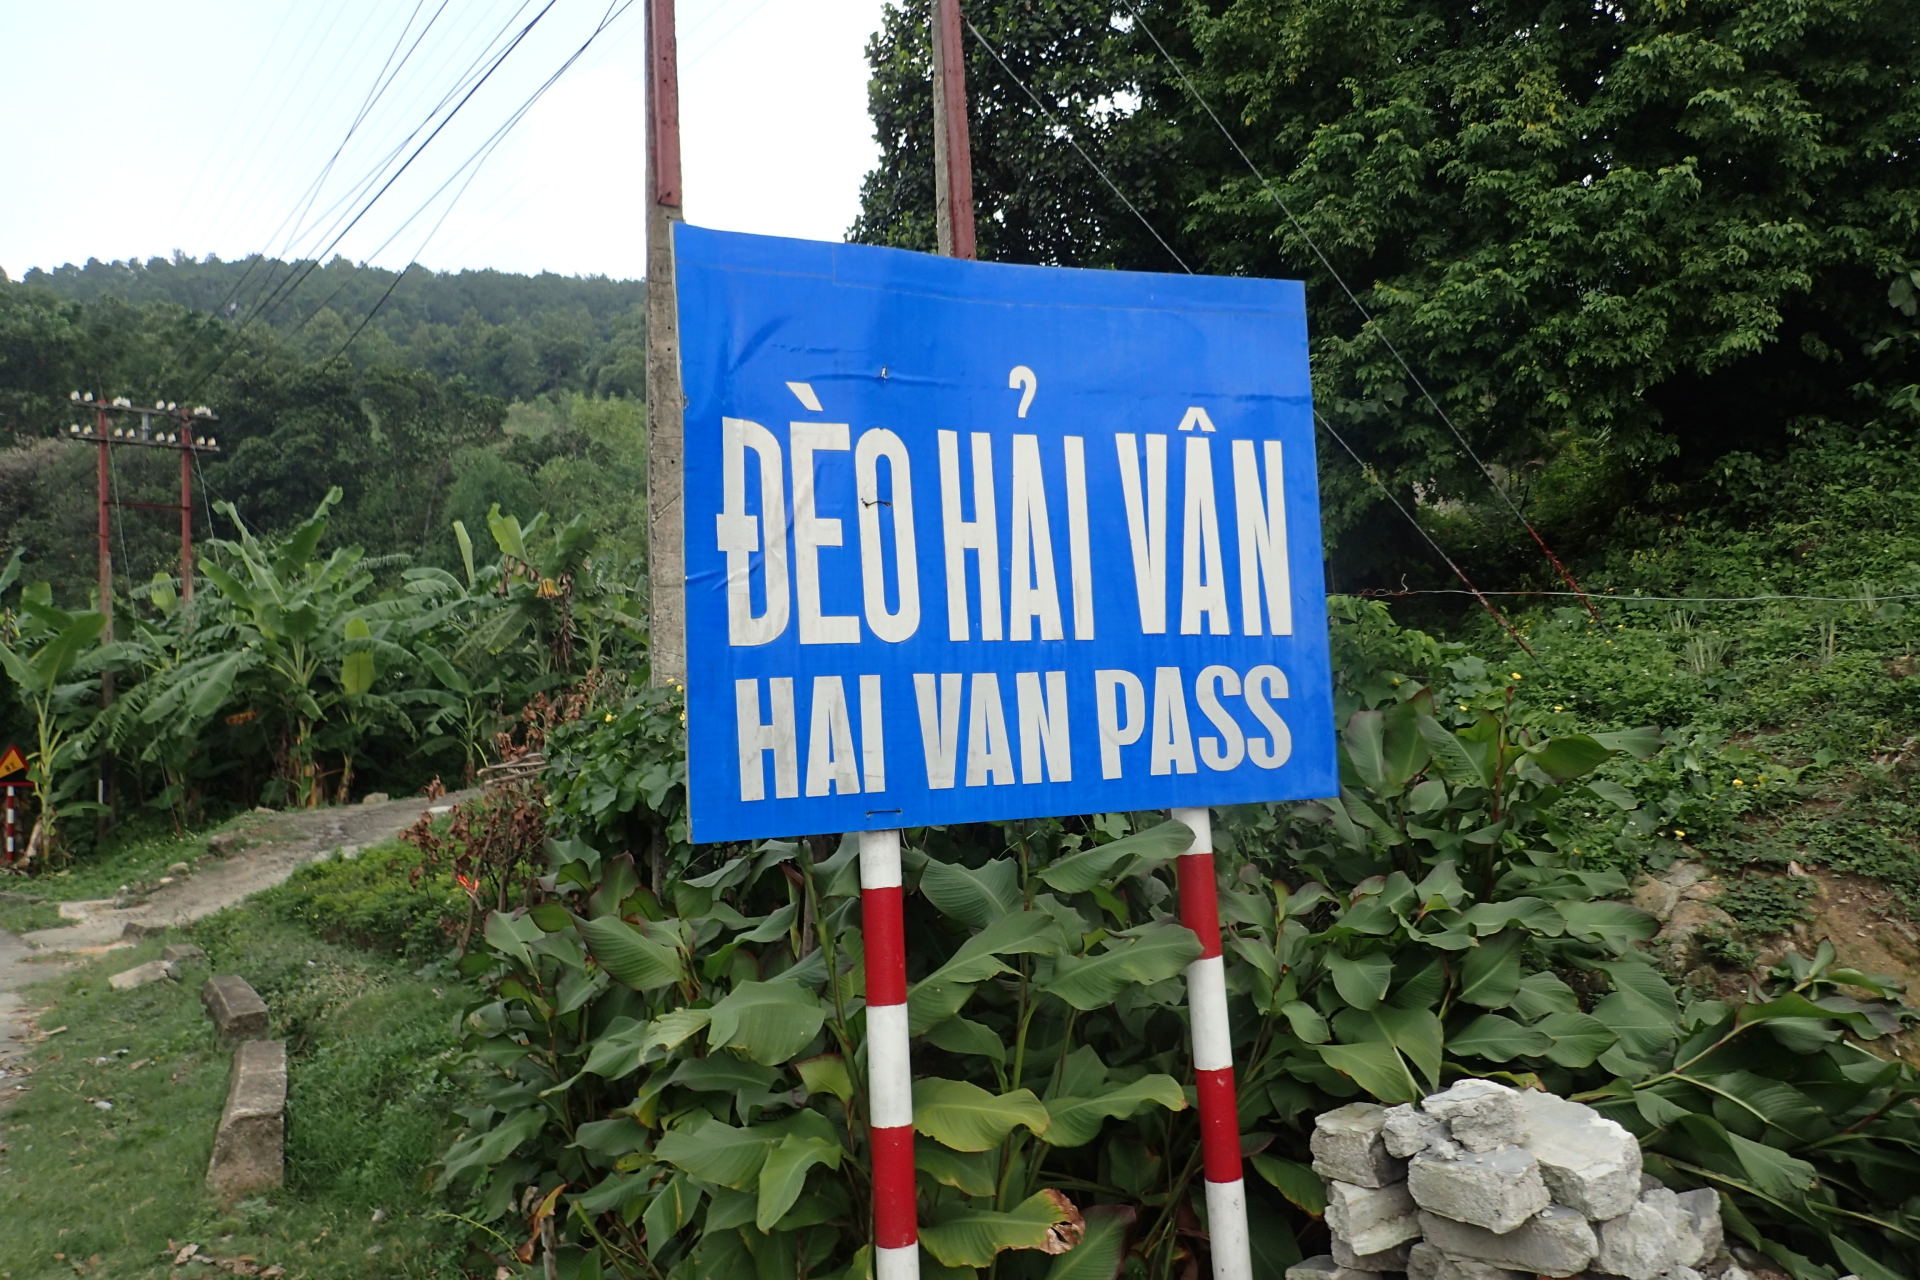 a sign revealing the hai can pass